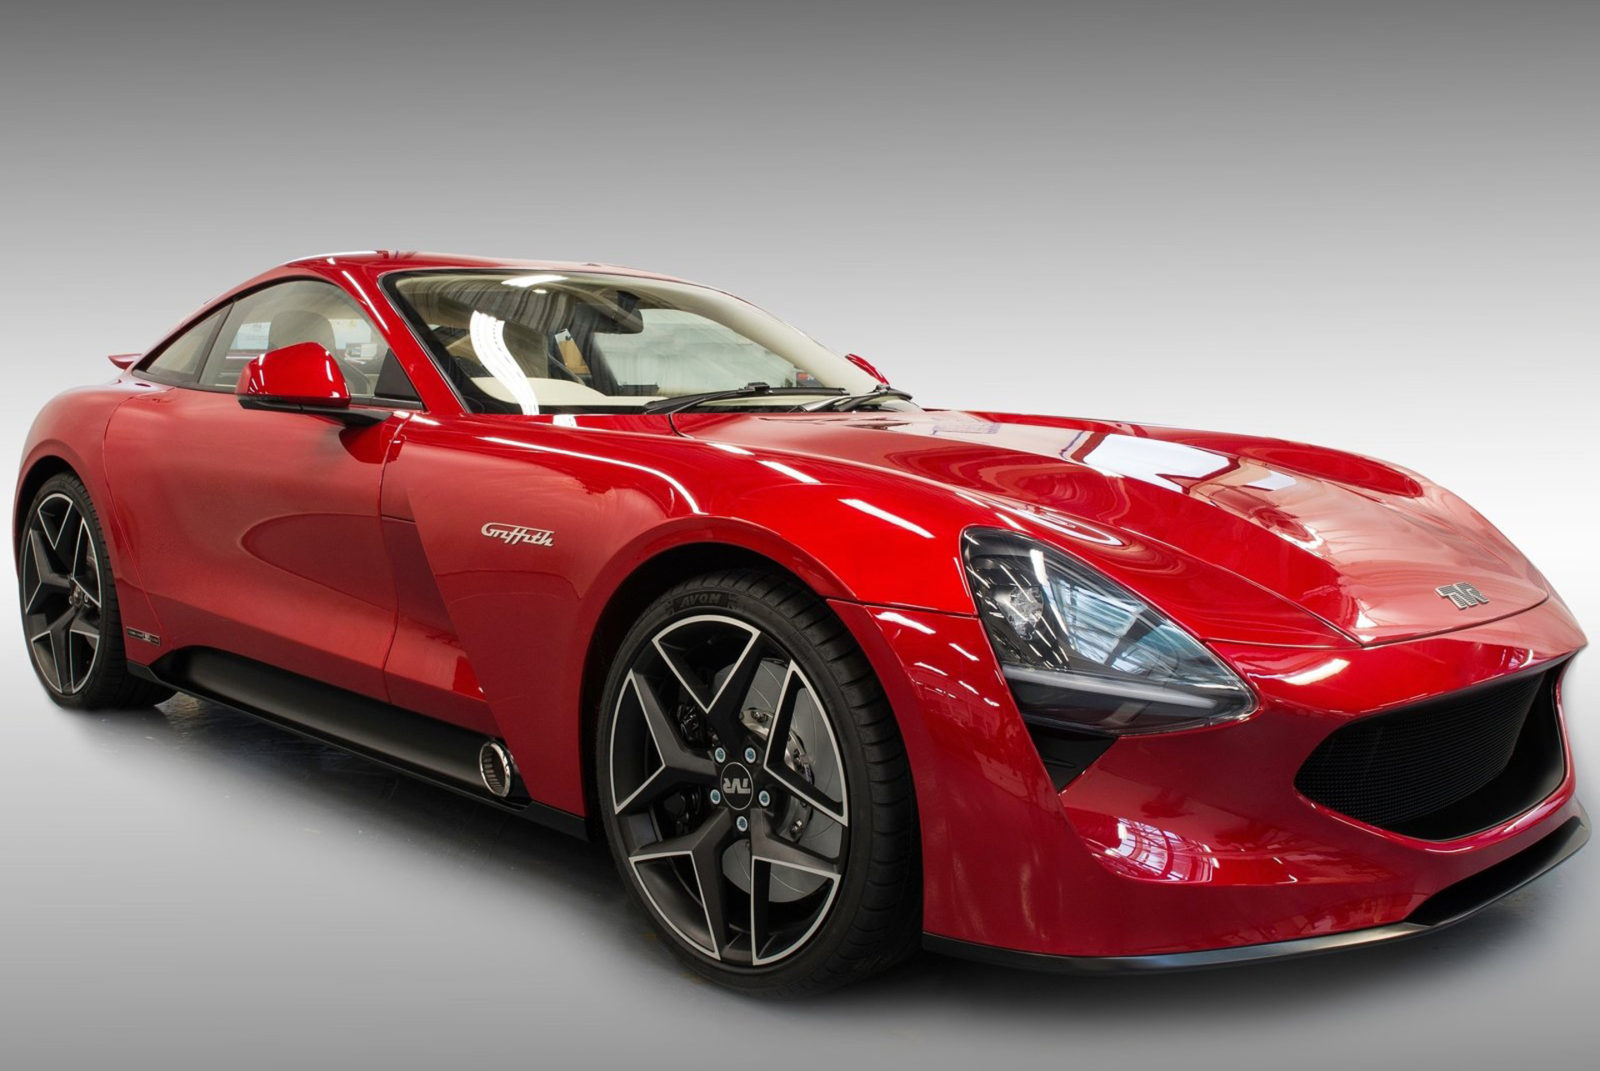 tvr-griffith-sports-car-held-up-by-funding-shortfall